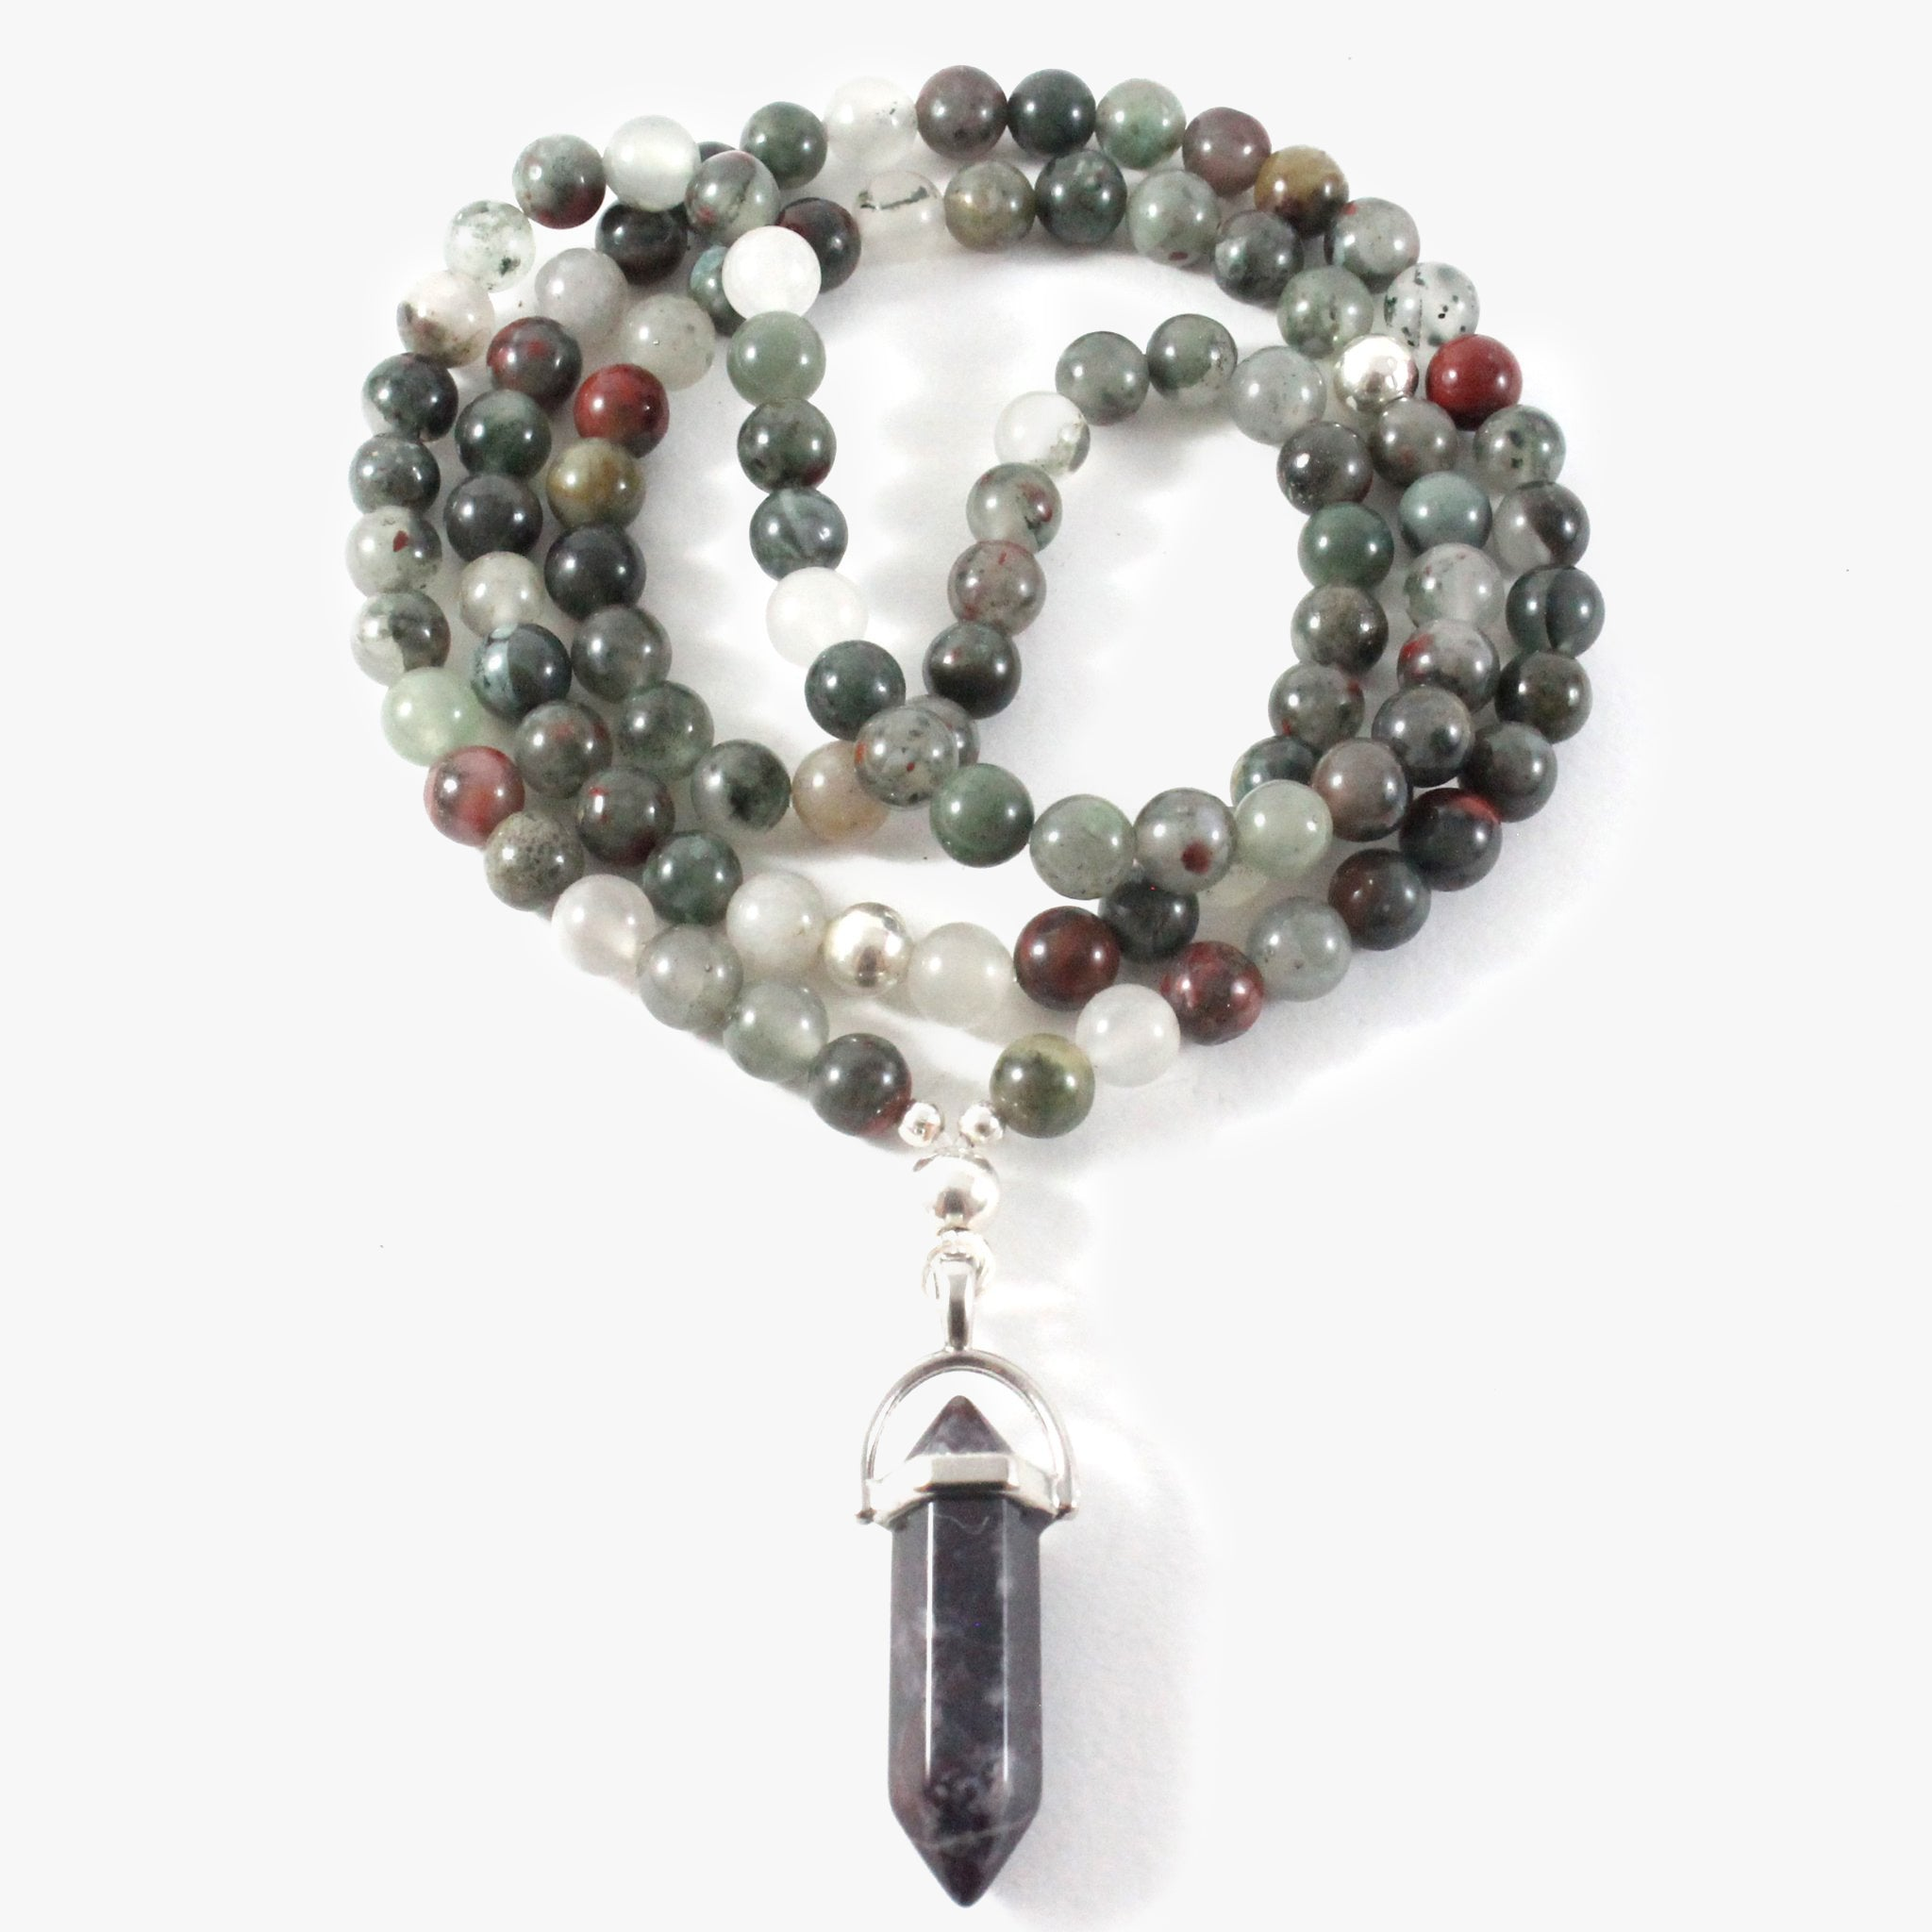 Bloodstone Necklace & Pendant - Chakra Collection - BabMakkah Stores